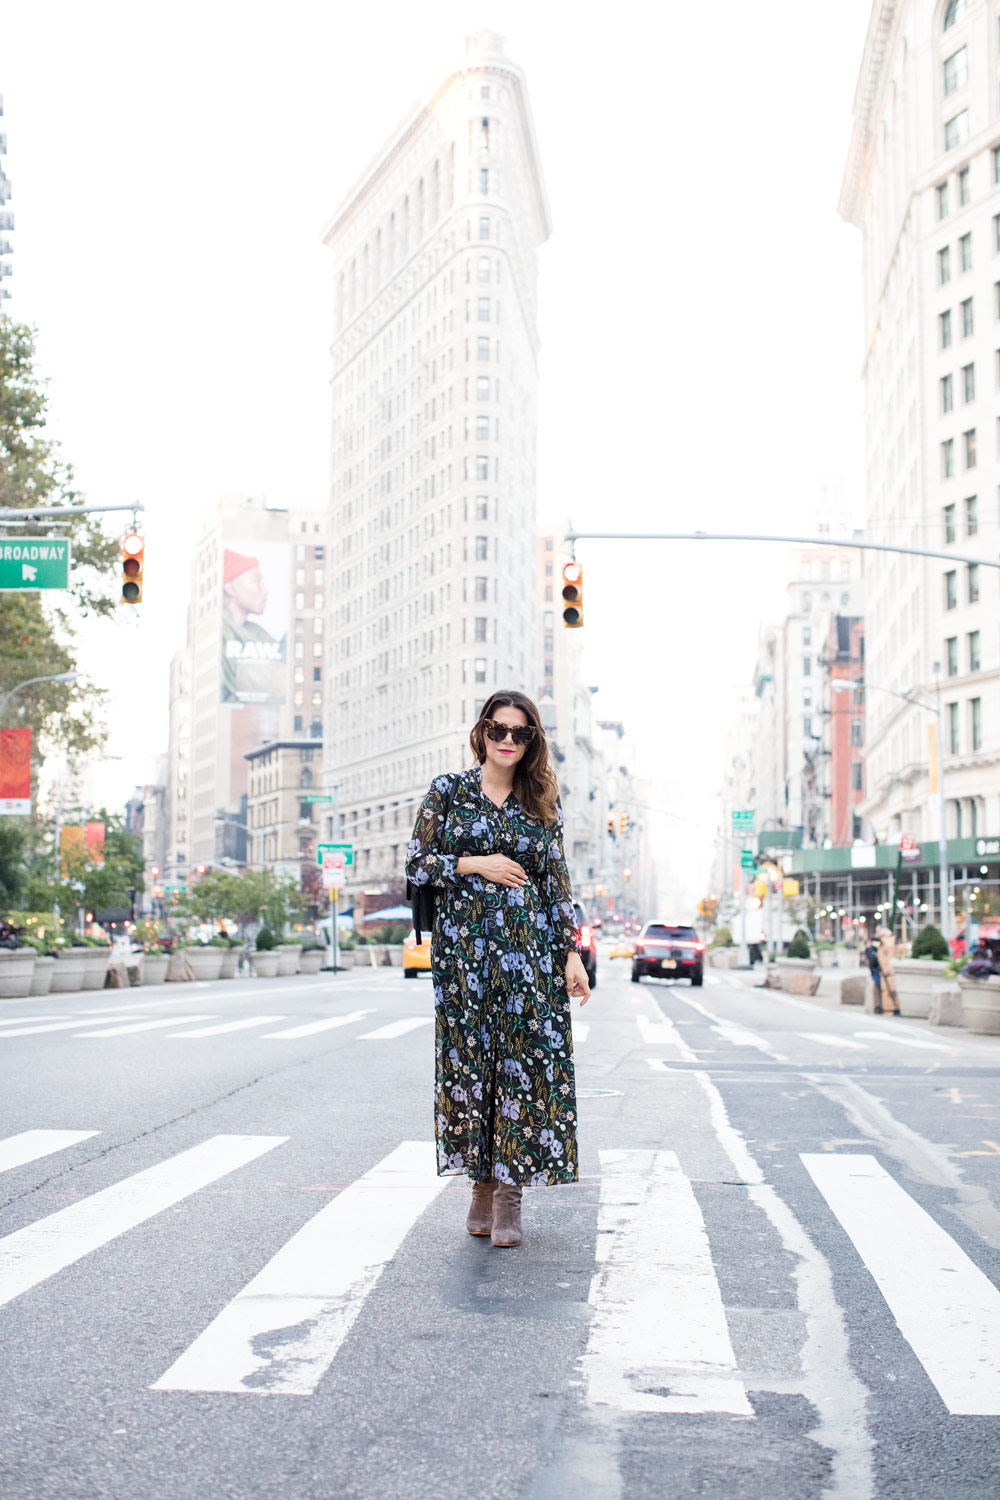 floral-dress-banana-republic-worth-new-york-fall-style-corporate-catwalk-joie-suede-boots-new-york-city-fashion-blogger-4